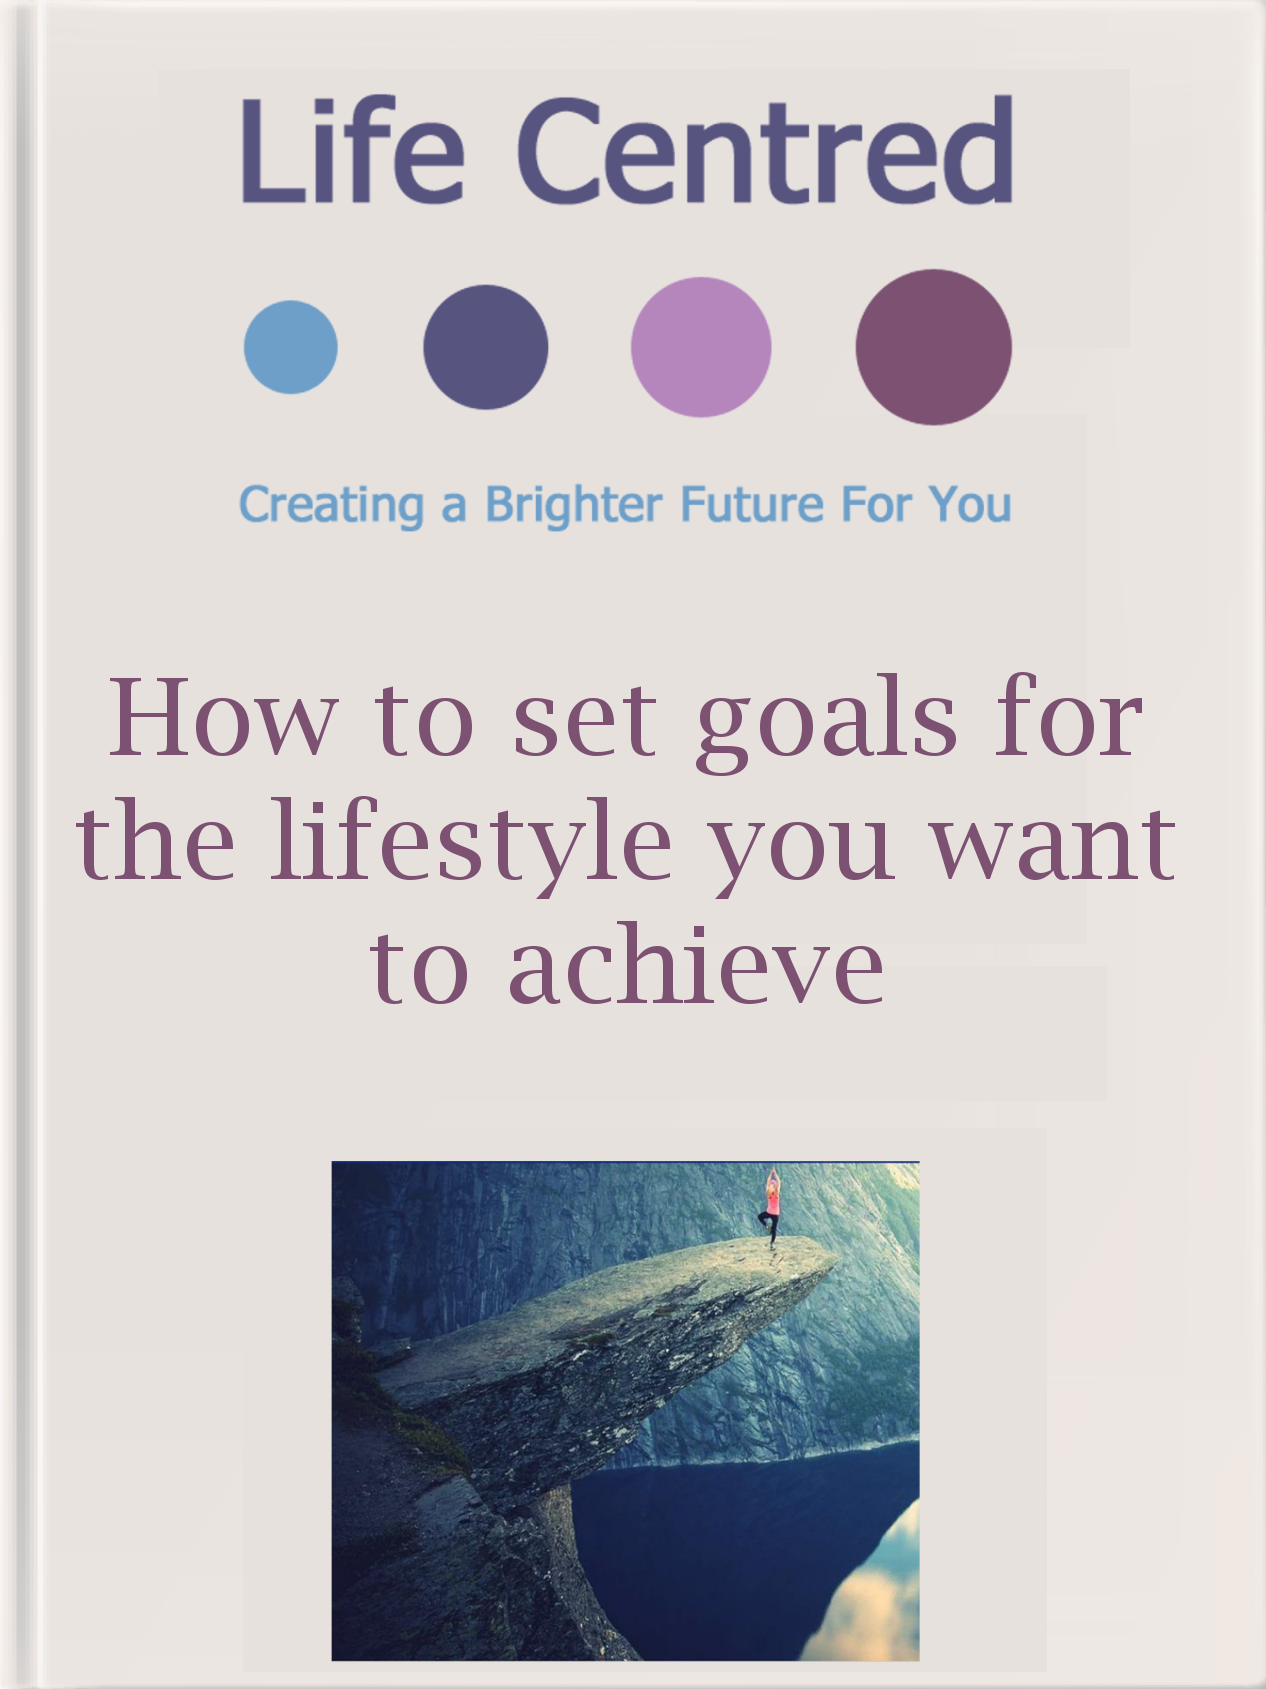 Download our Guide to Setting Goals